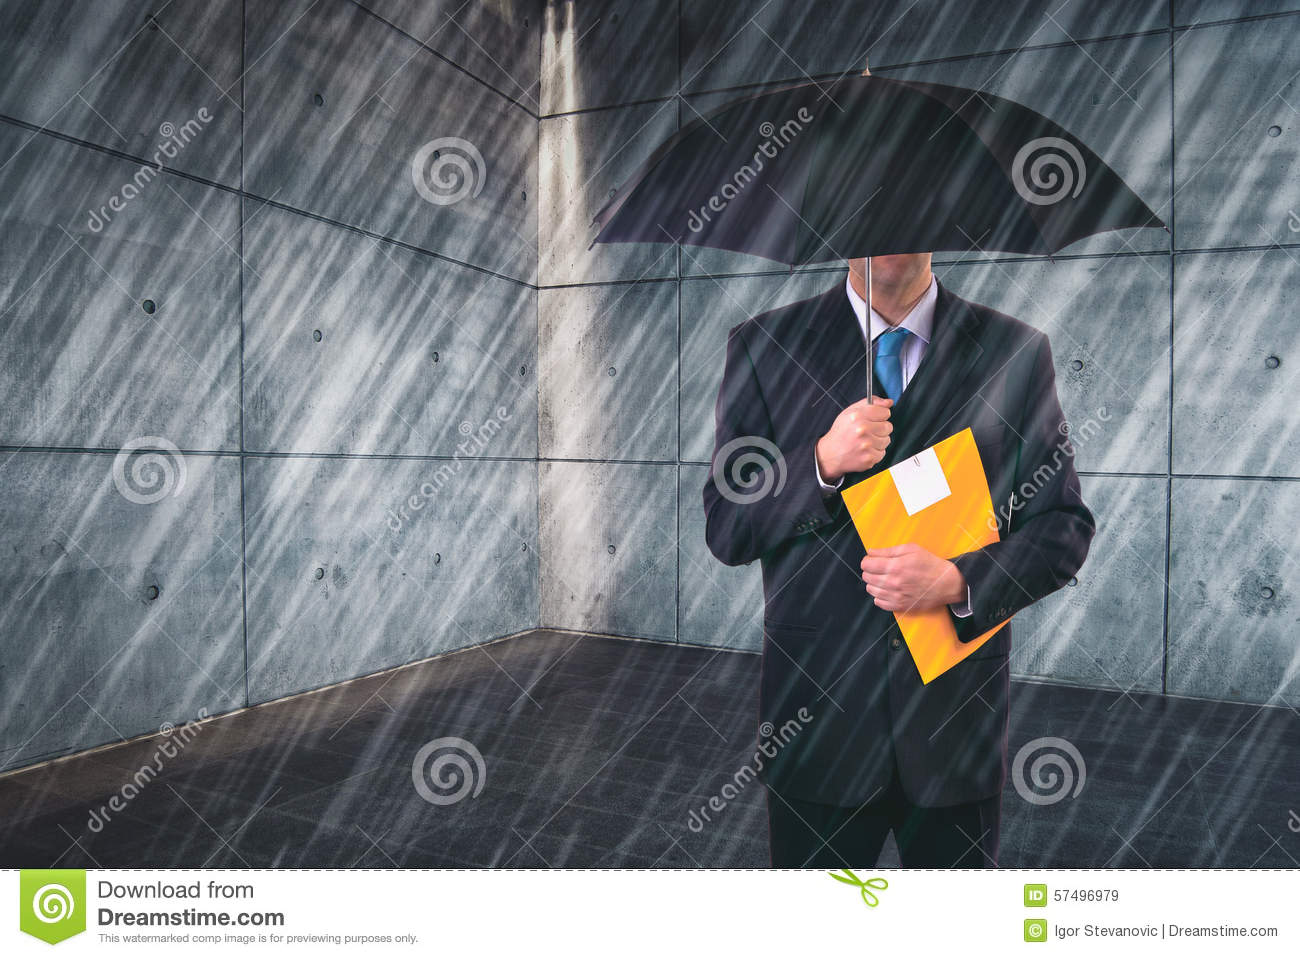 an evaluation of the story of the umbrella man Find a+ essays, research papers, book notes, course notes and writing tips millions of students use studymode to jumpstart their assignments.